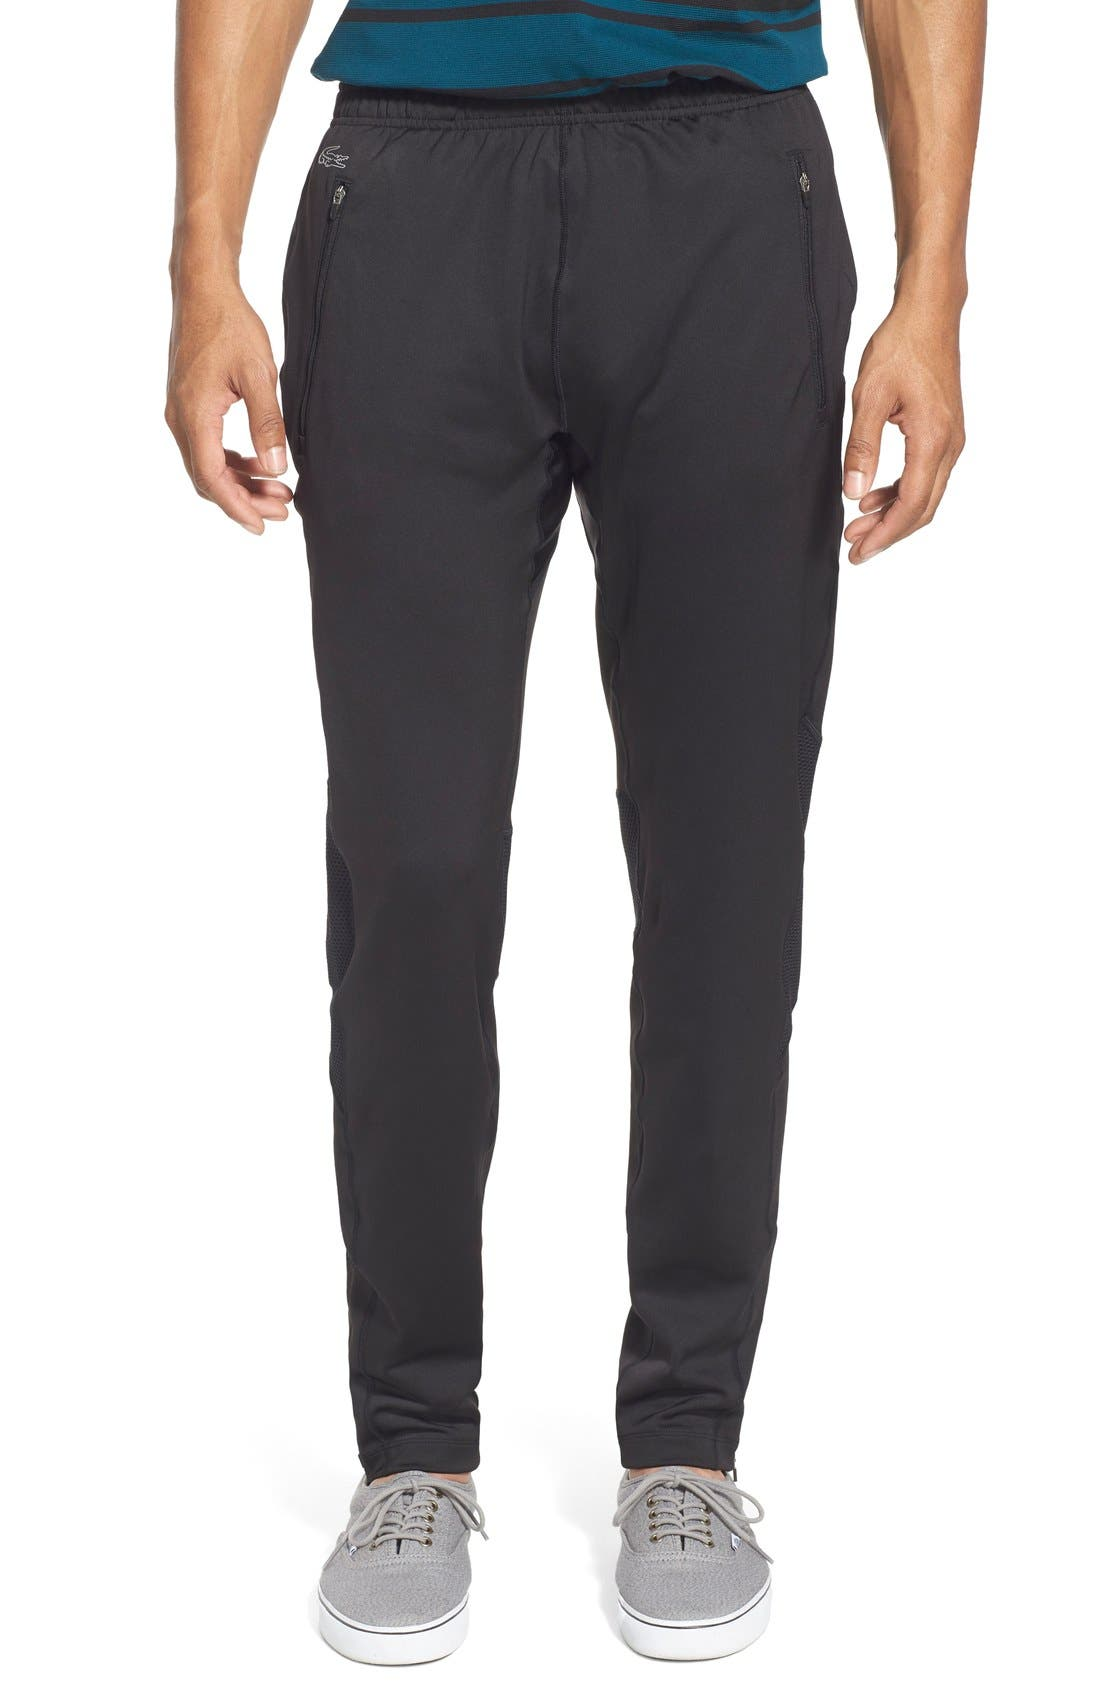 'Sport' Ultra Dry Stretch Performance Track Pants,                             Main thumbnail 1, color,                             001